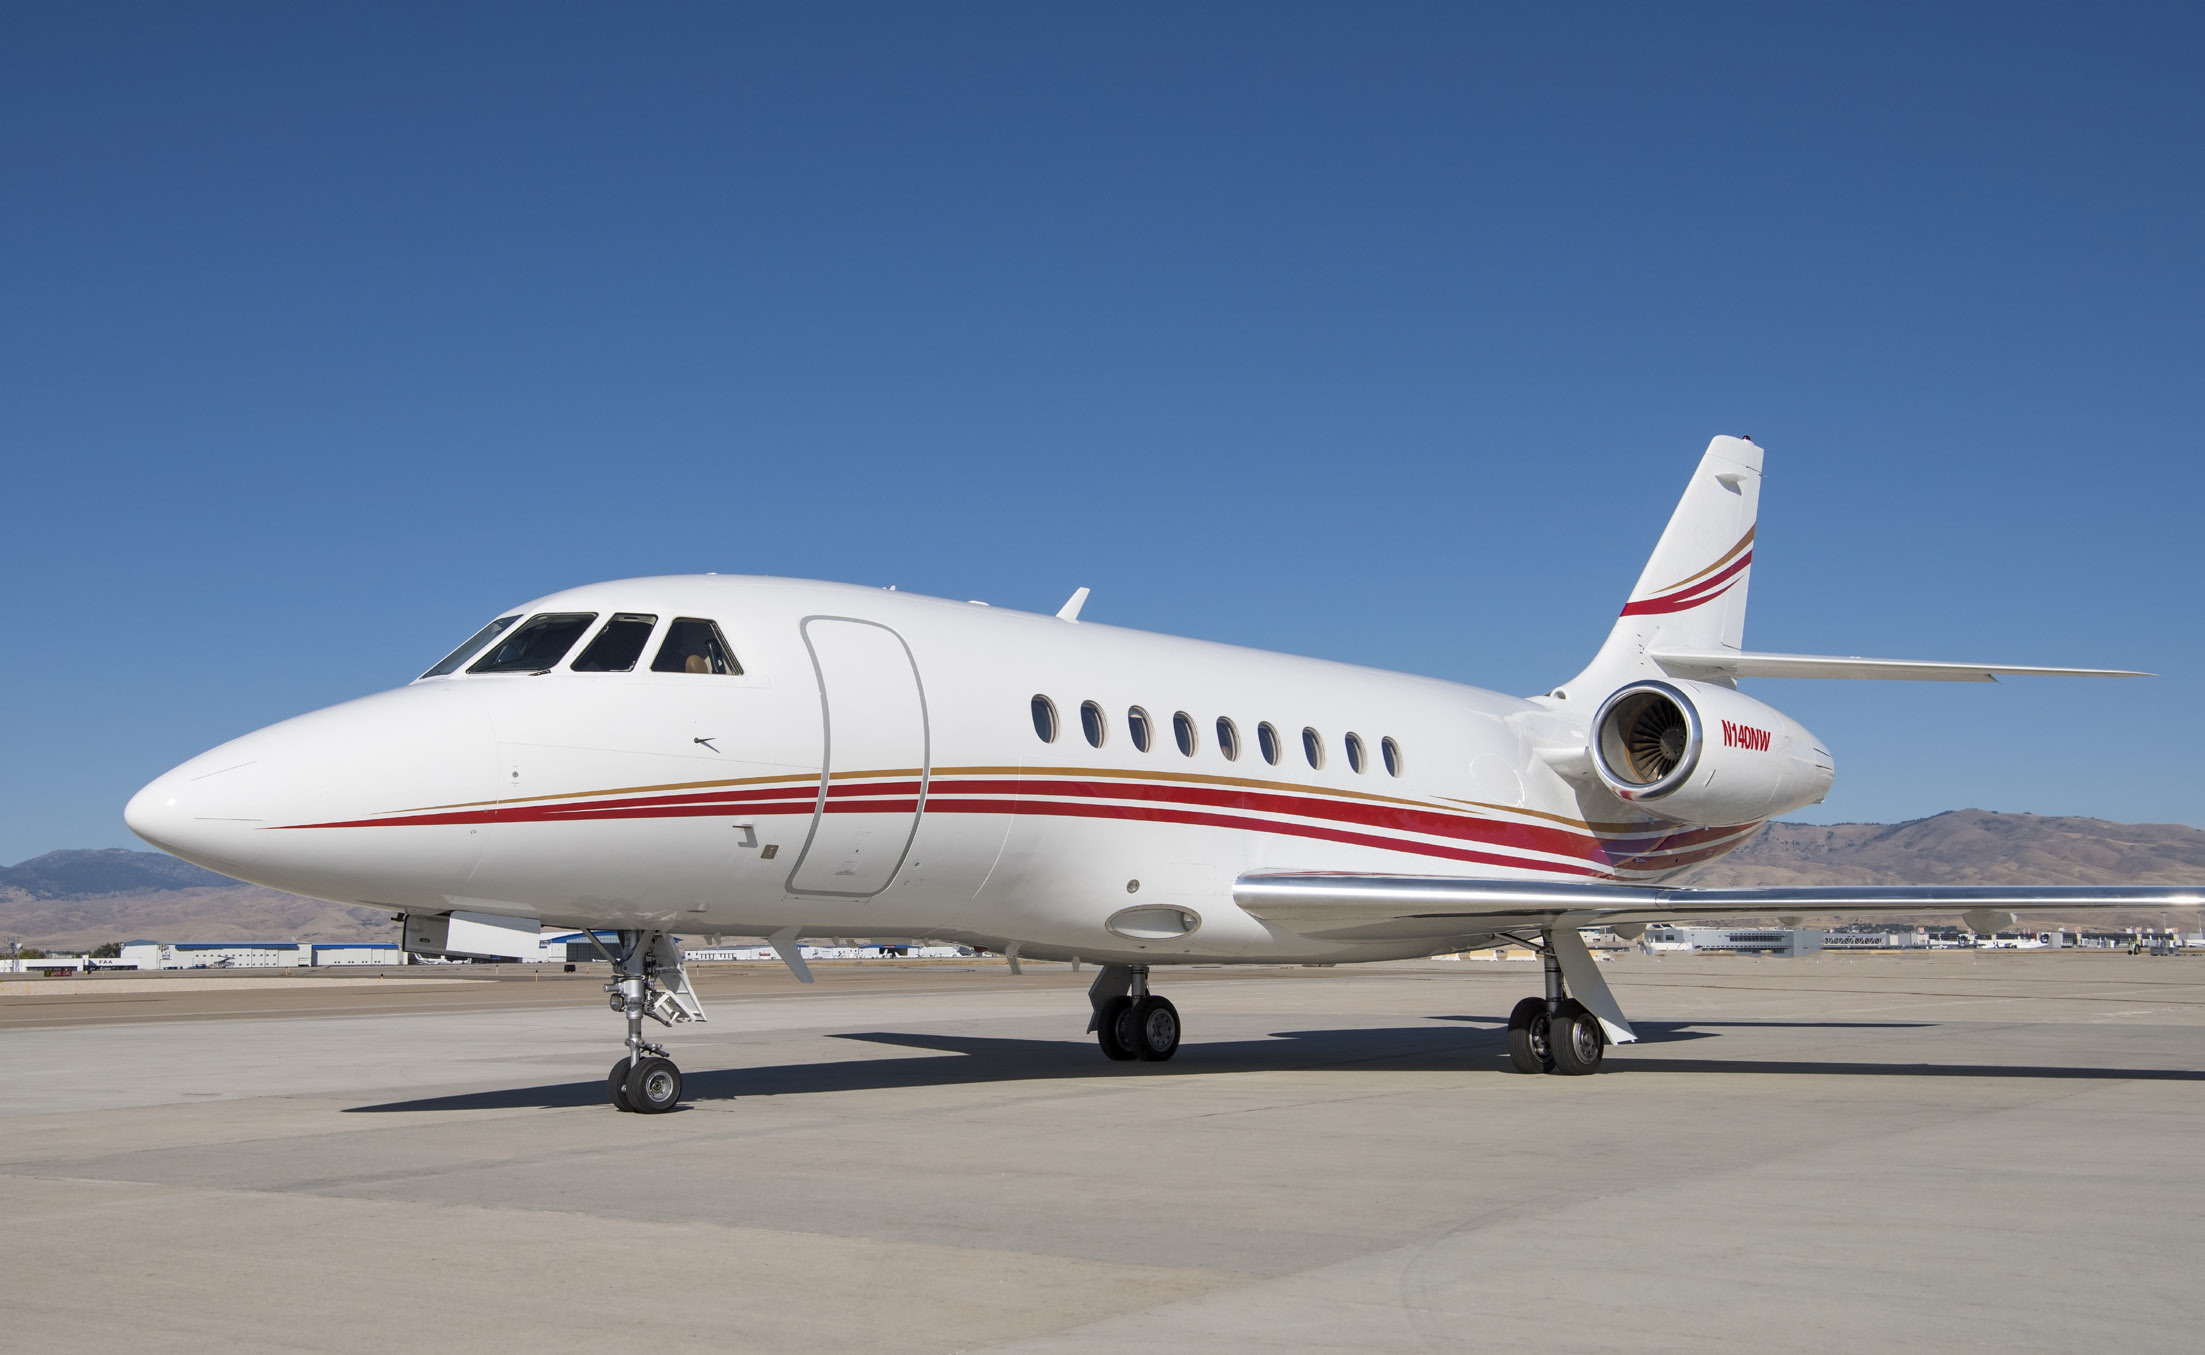 Private Jet for Sale - Globalair com